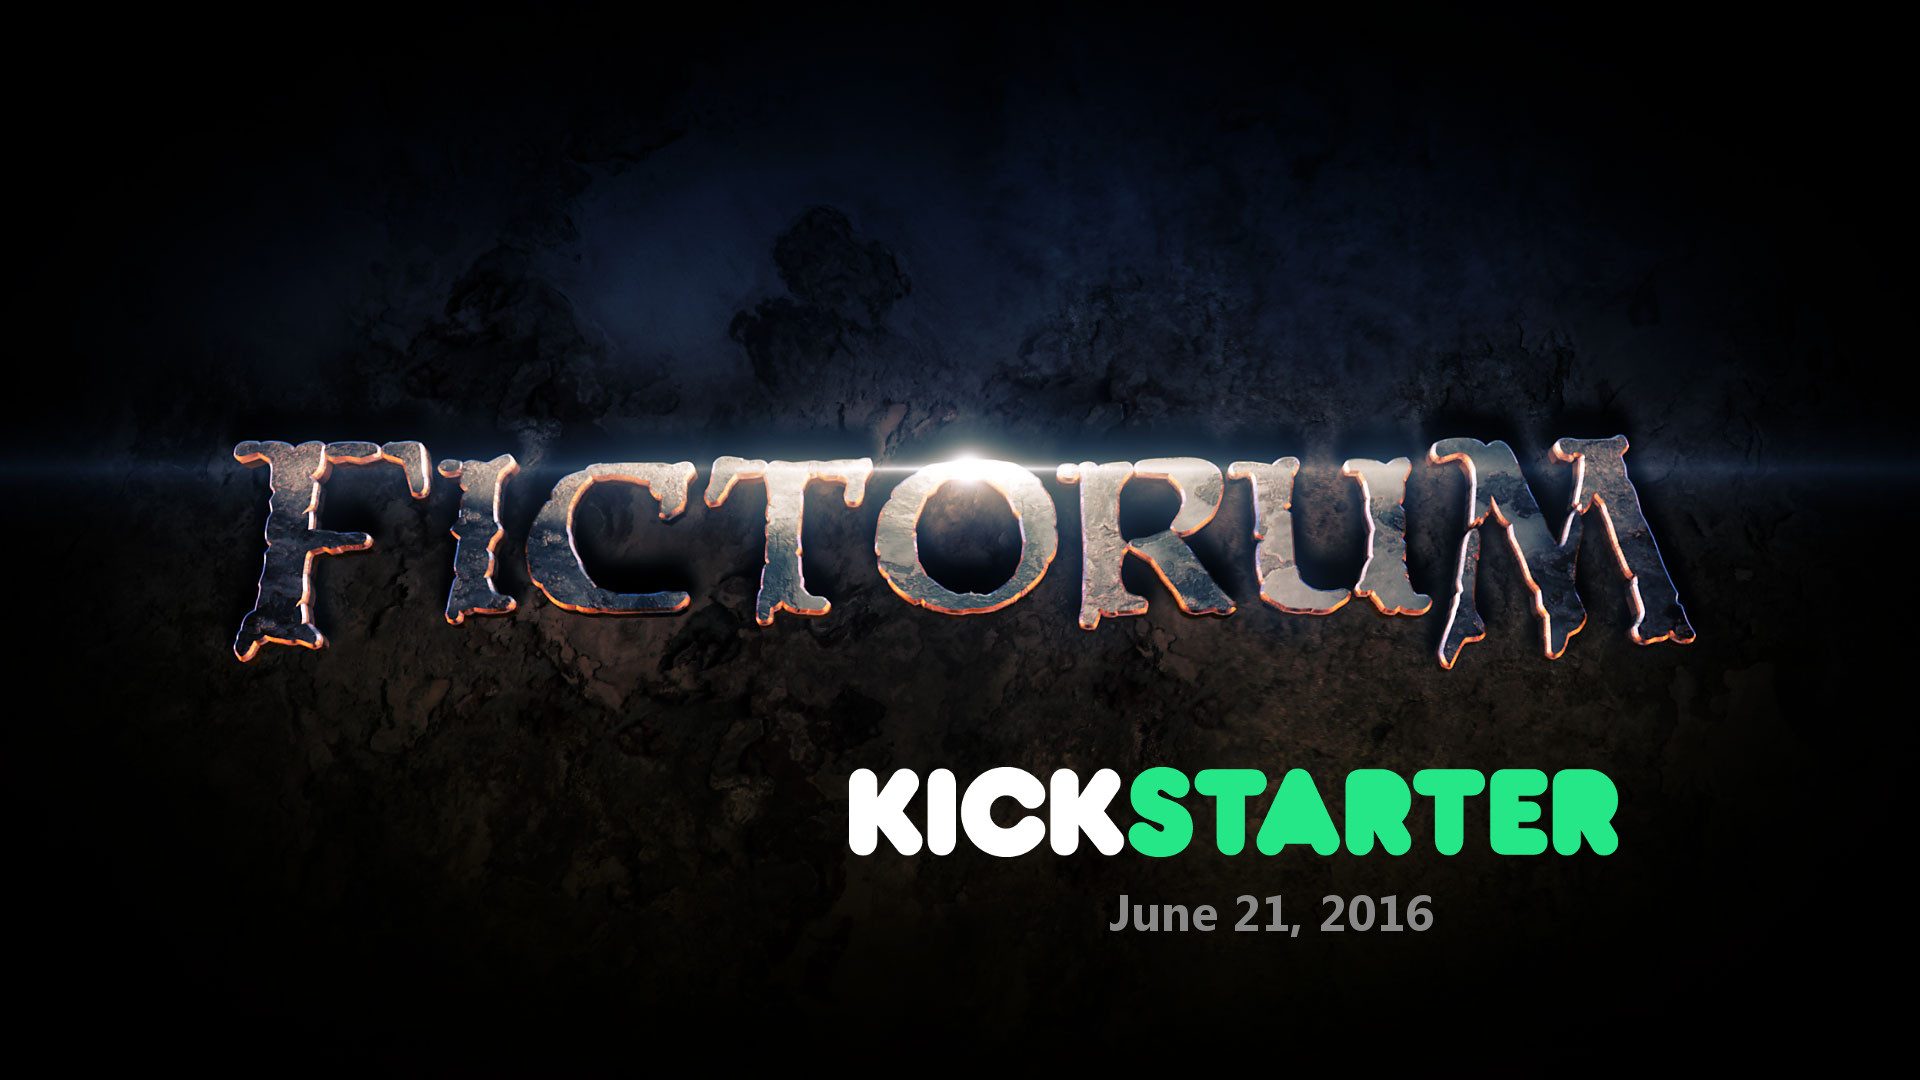 Fictorum Wizard Video Game Kickstarter